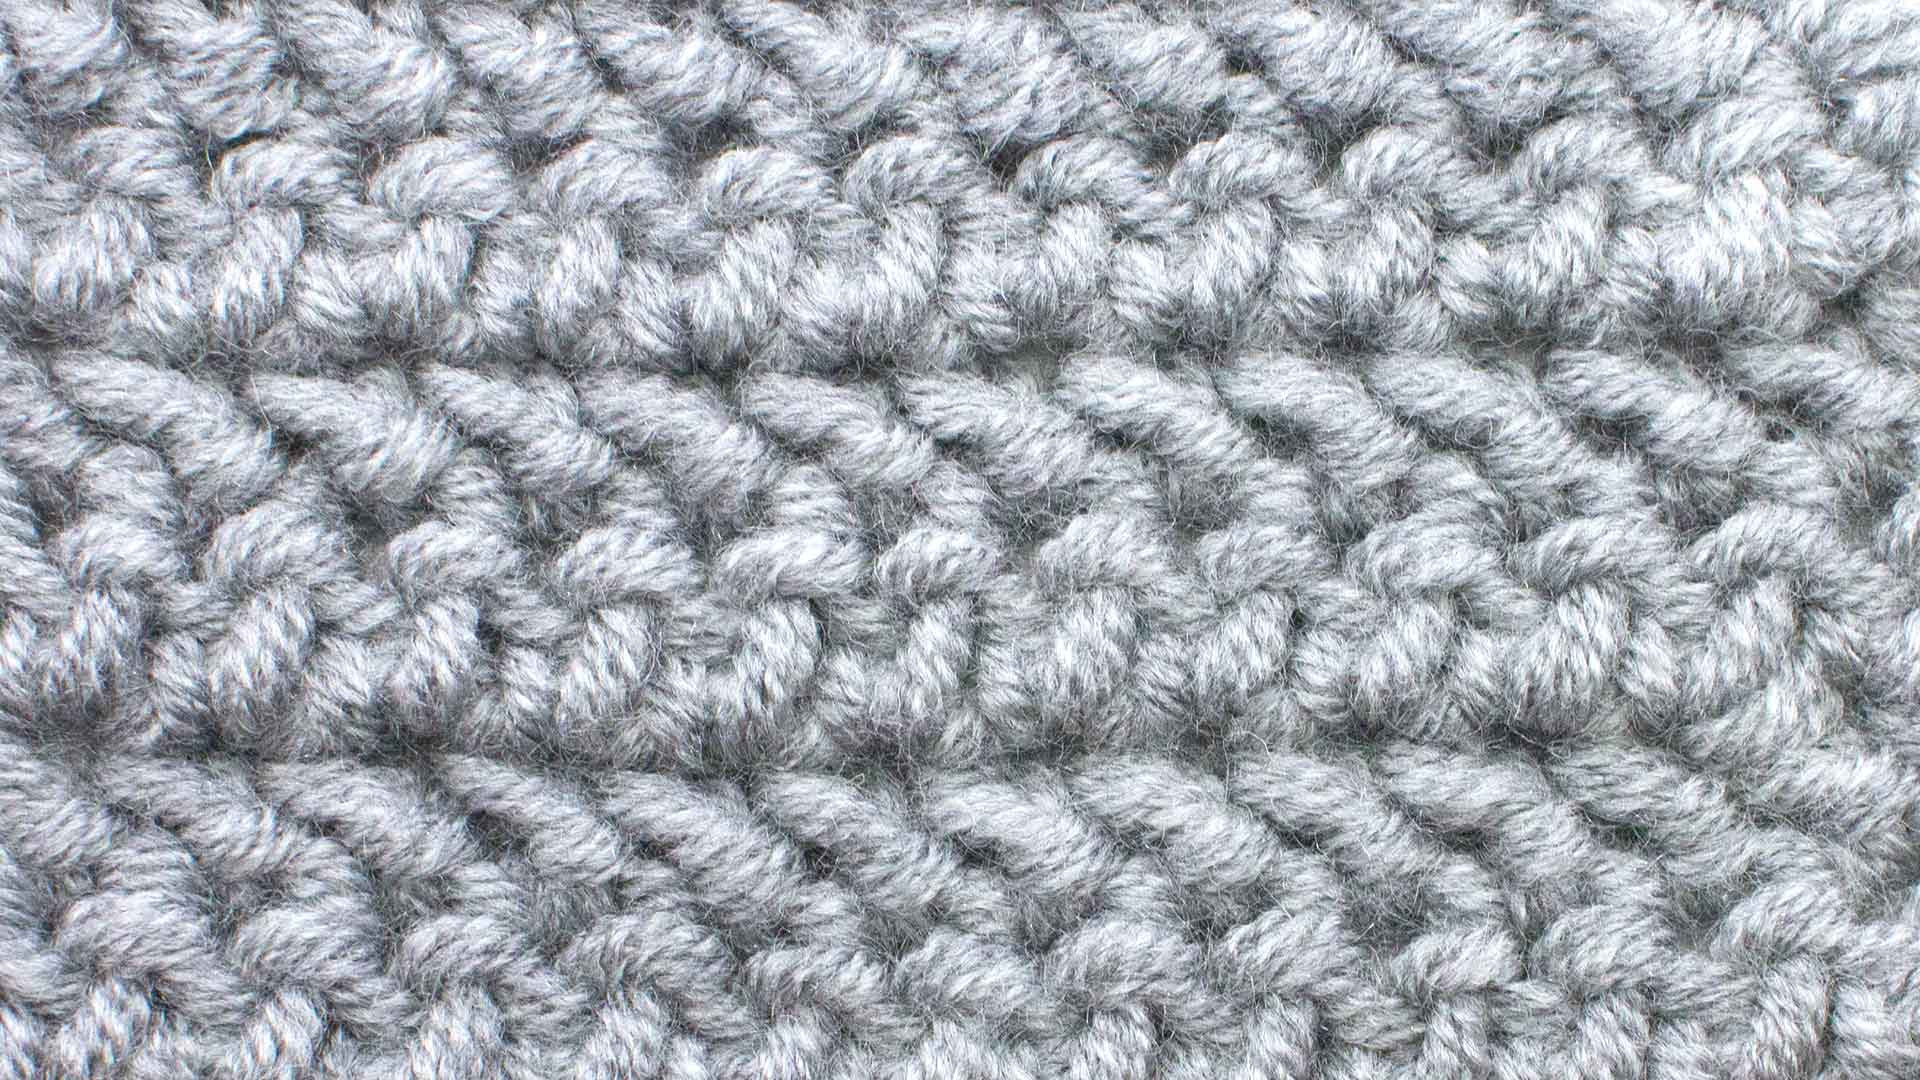 Double Crochet Stitch Awesome Herringbone Hdc Hhdc Crochet New Stitch A Day Of Awesome 41 Pictures Double Crochet Stitch